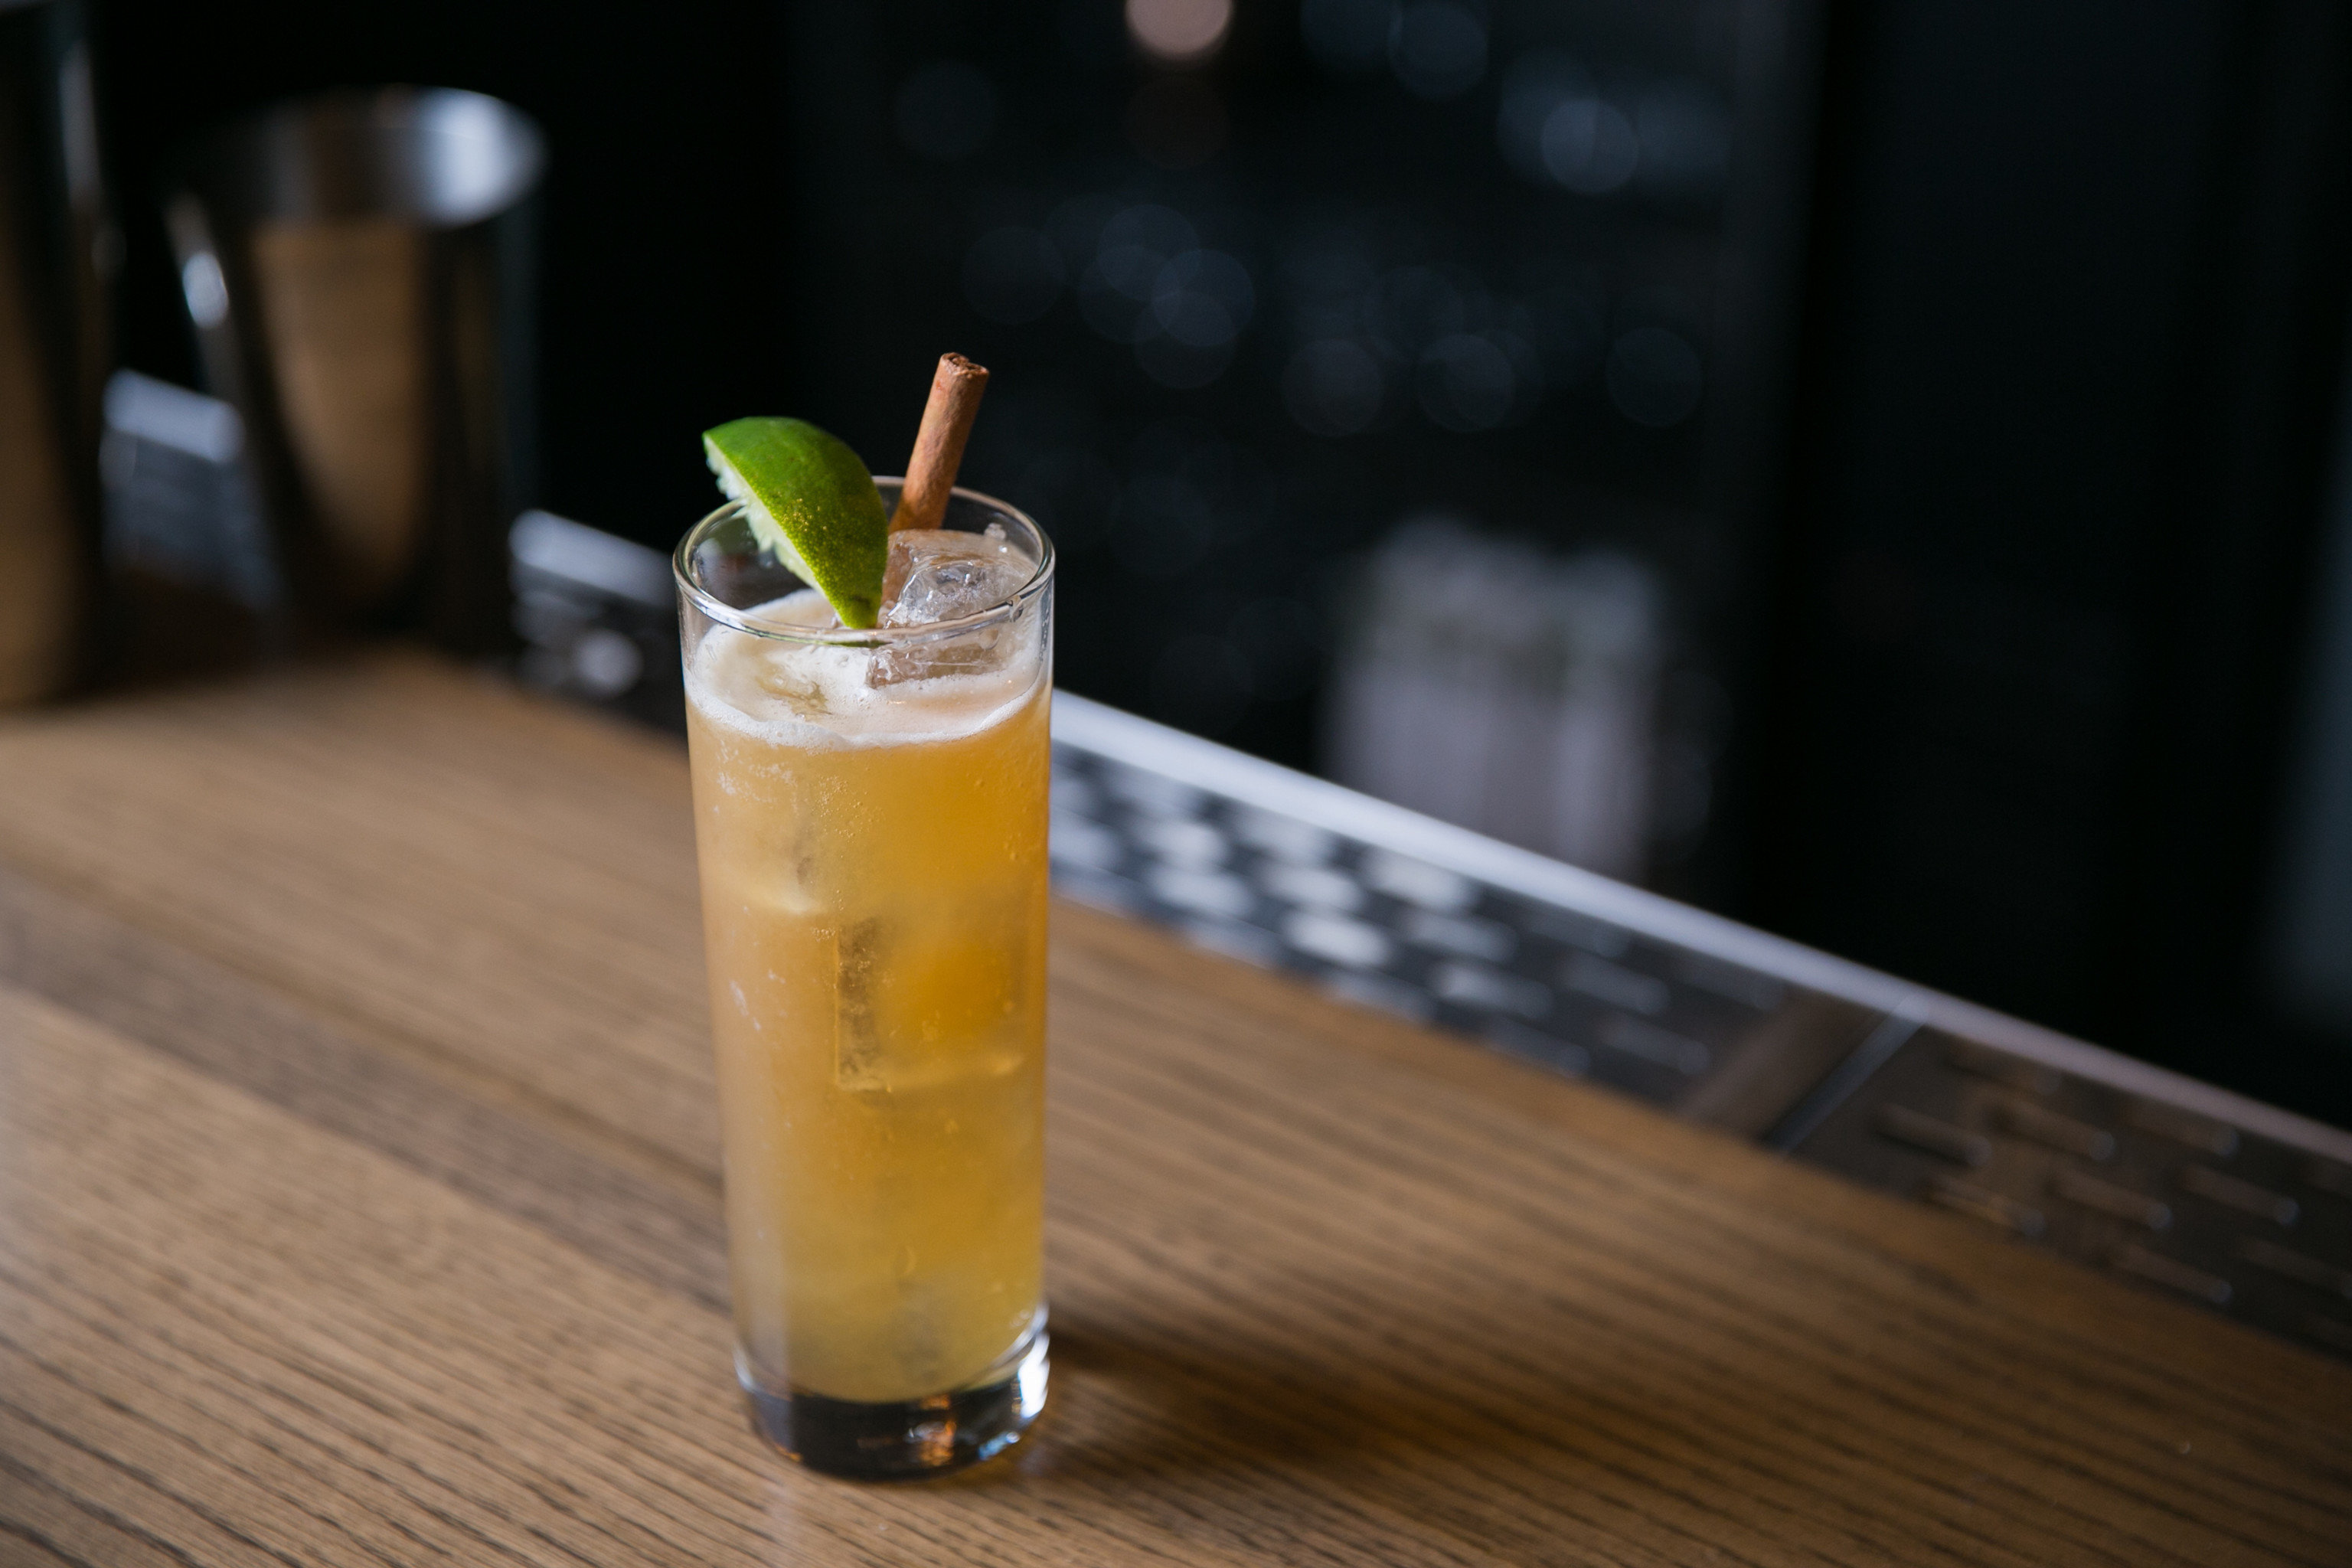 sitting Drink alcoholic beverage cocktail wooden glass food distilled beverage non alcoholic beverage liqueur beverage mai tai alcohol